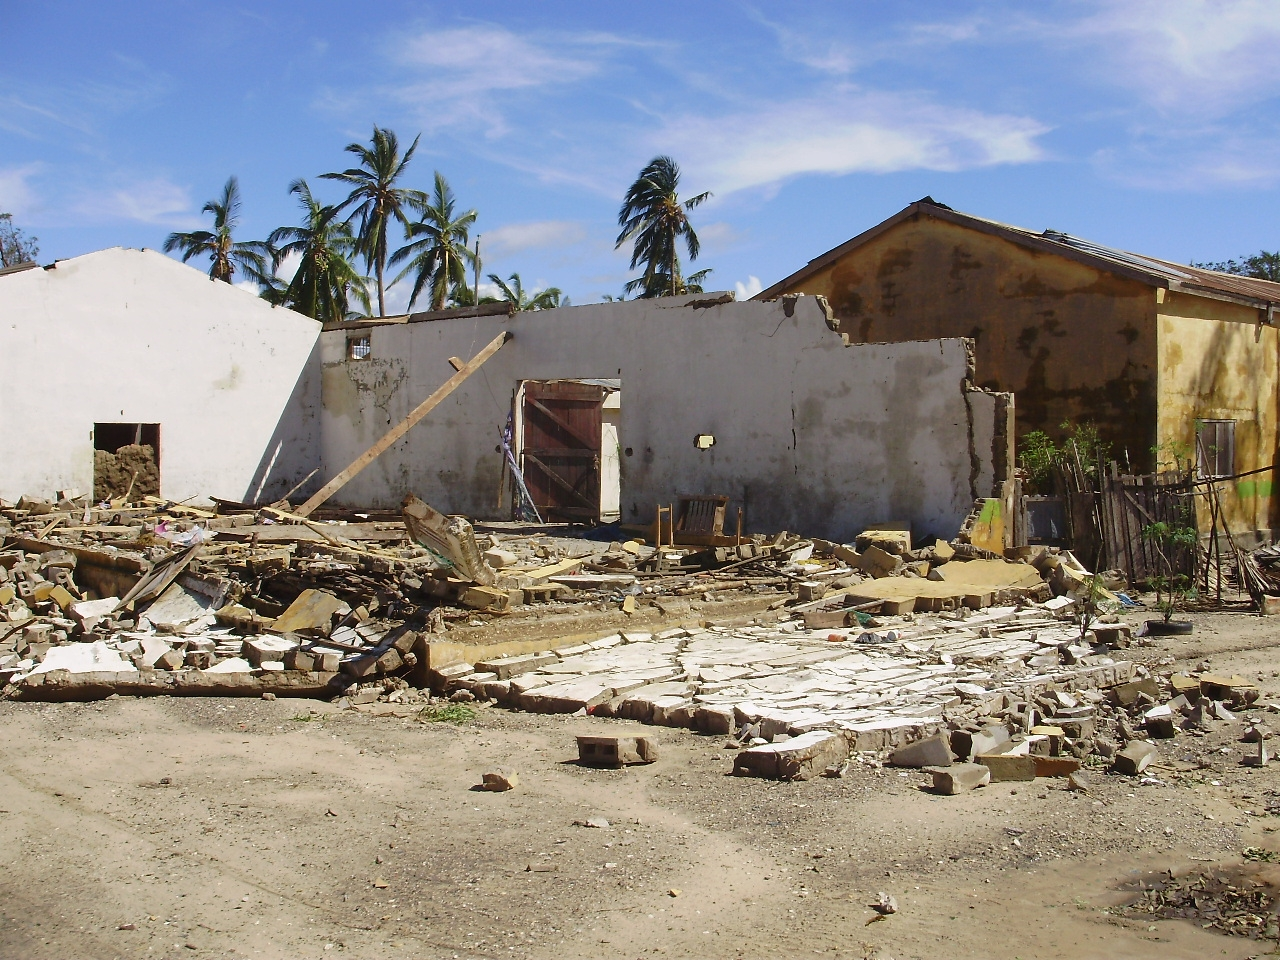 Buildings have been leveled in Morondava